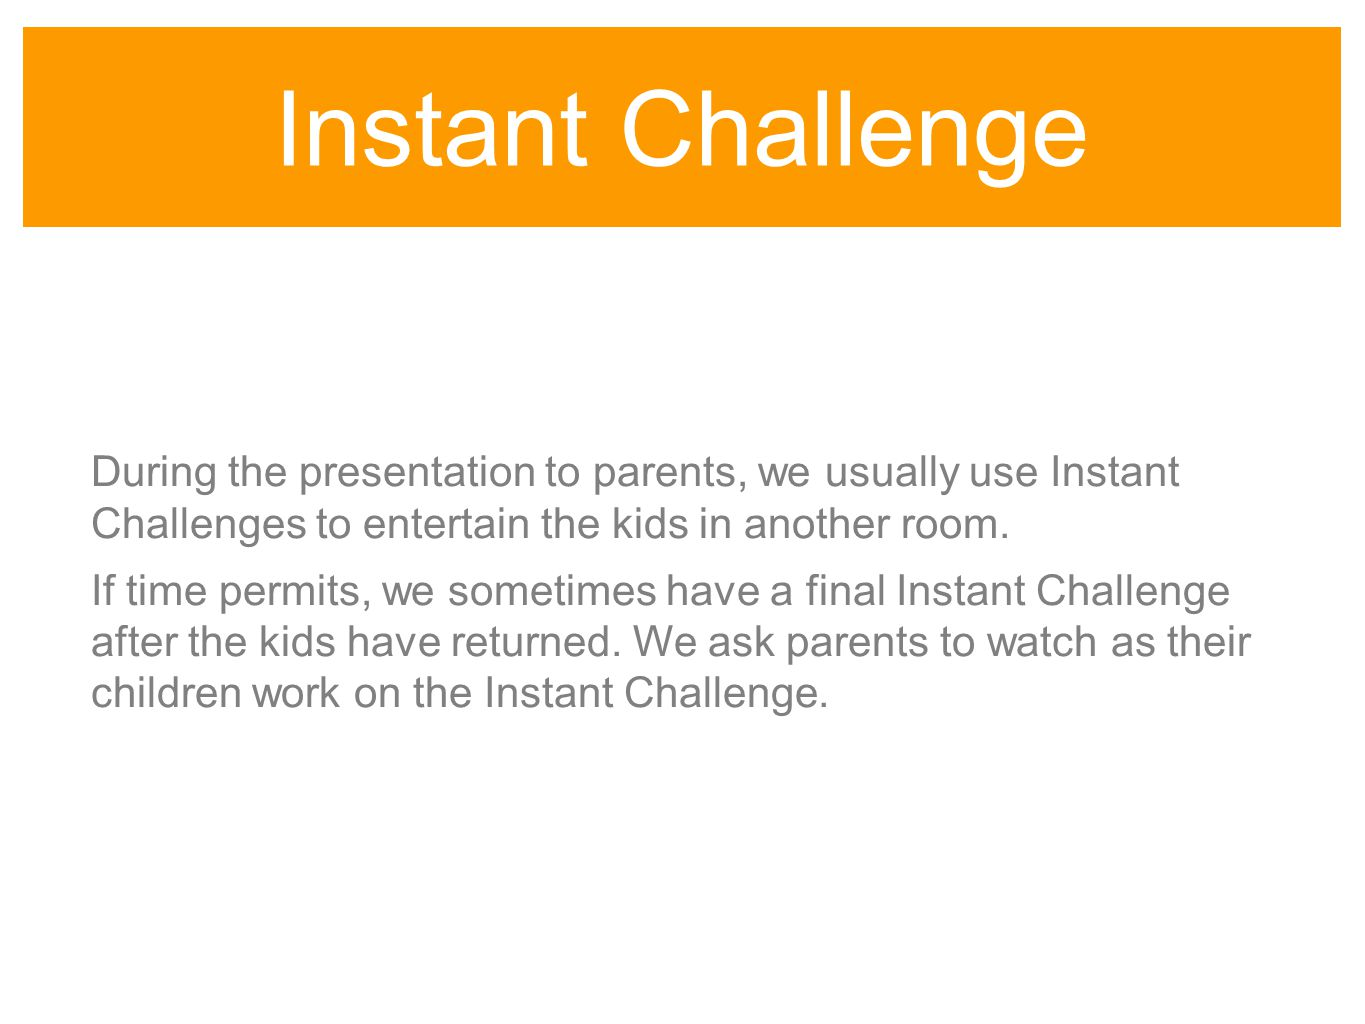 Instant Challenge During the presentation to parents, we usually use Instant Challenges to entertain the kids in another room.